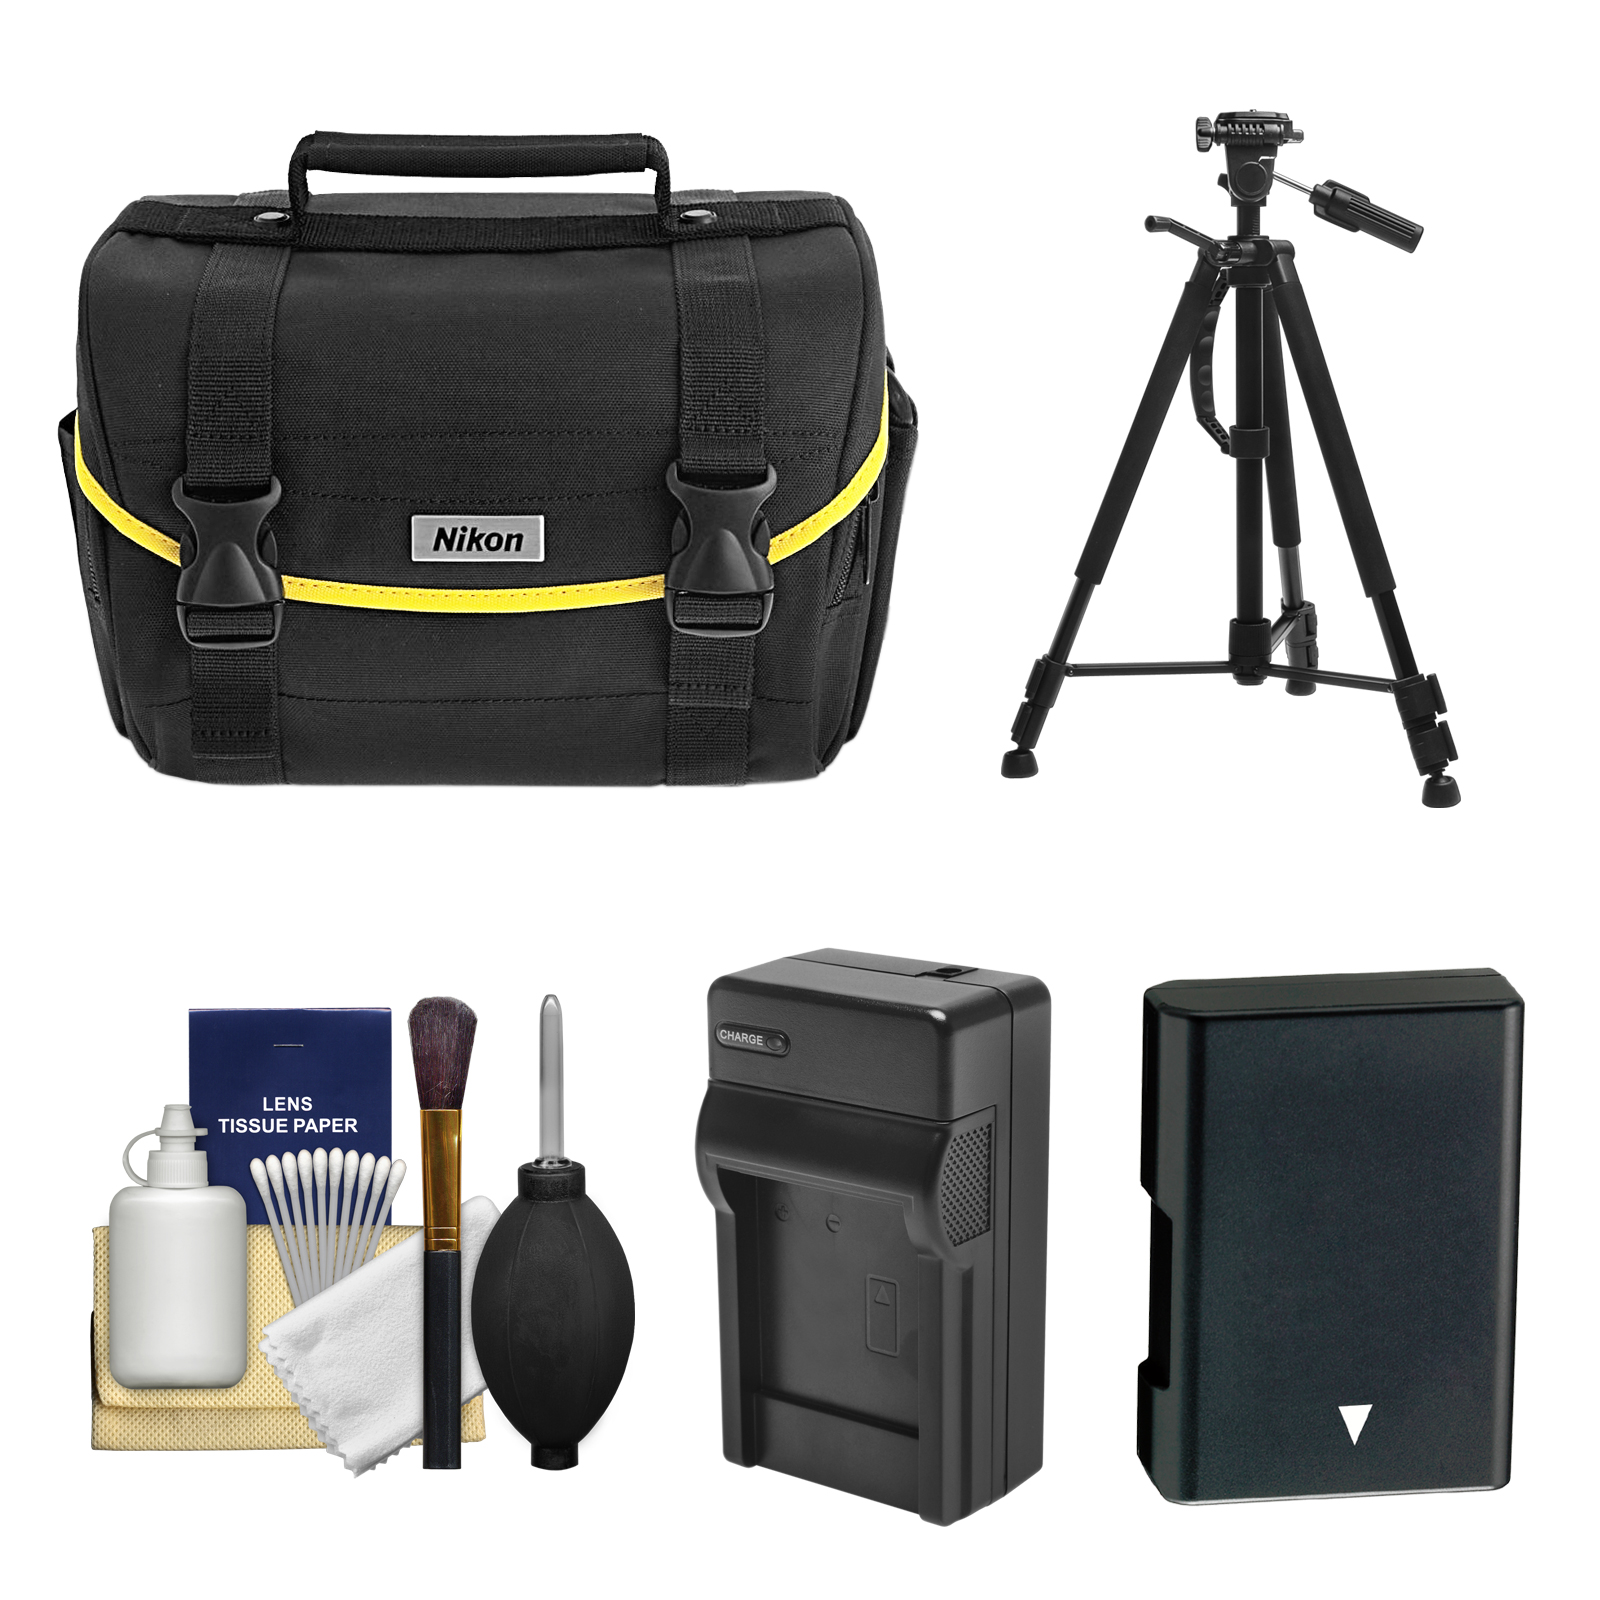 Nikon Starter Digital SLR Camera Case - Gadget Bag with EN-EL14 Battery + Charger + Tripod + Kit for D3100, D3200, D3300, D5100, D5200, D5300